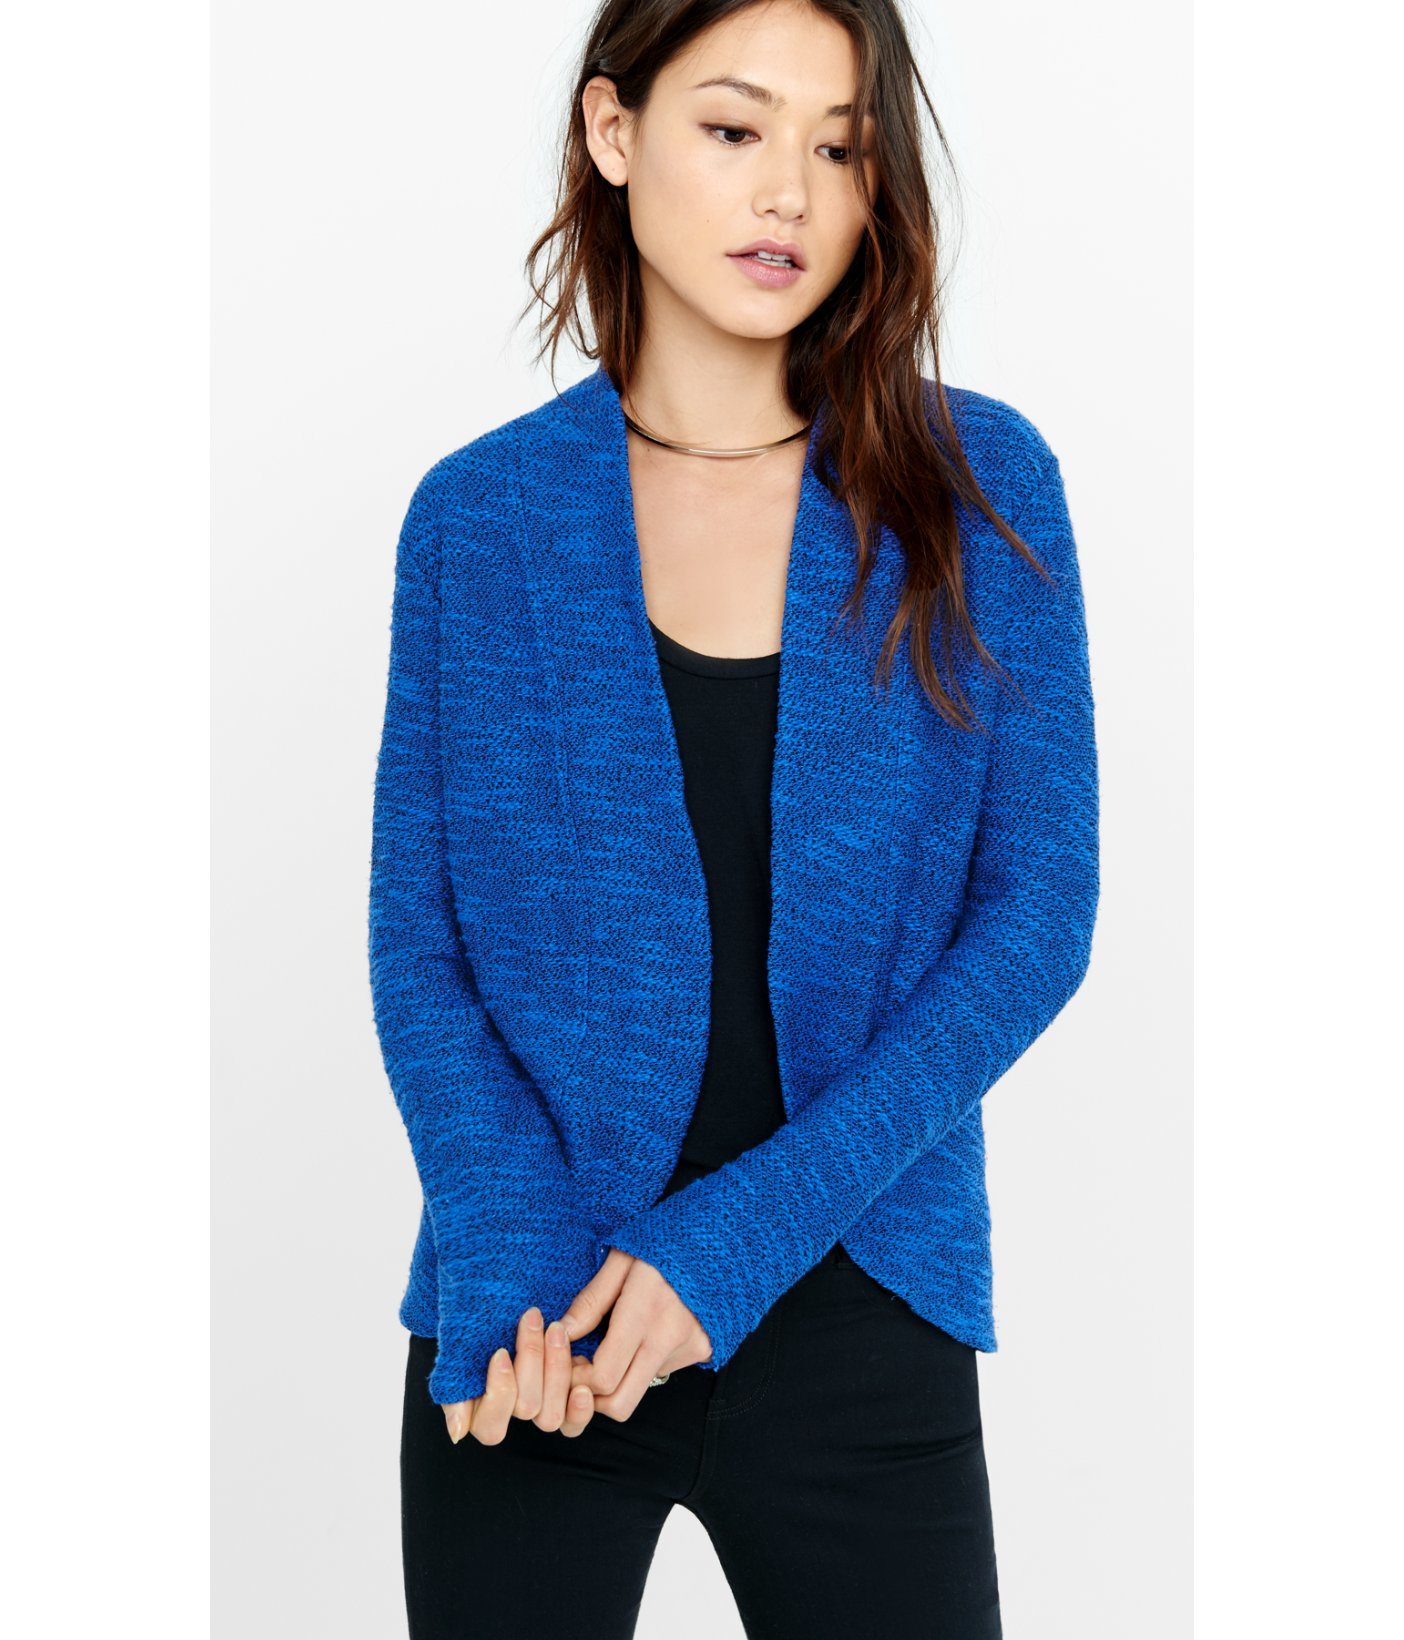 Lyst - Express Textured Knit Cover-up in Blue